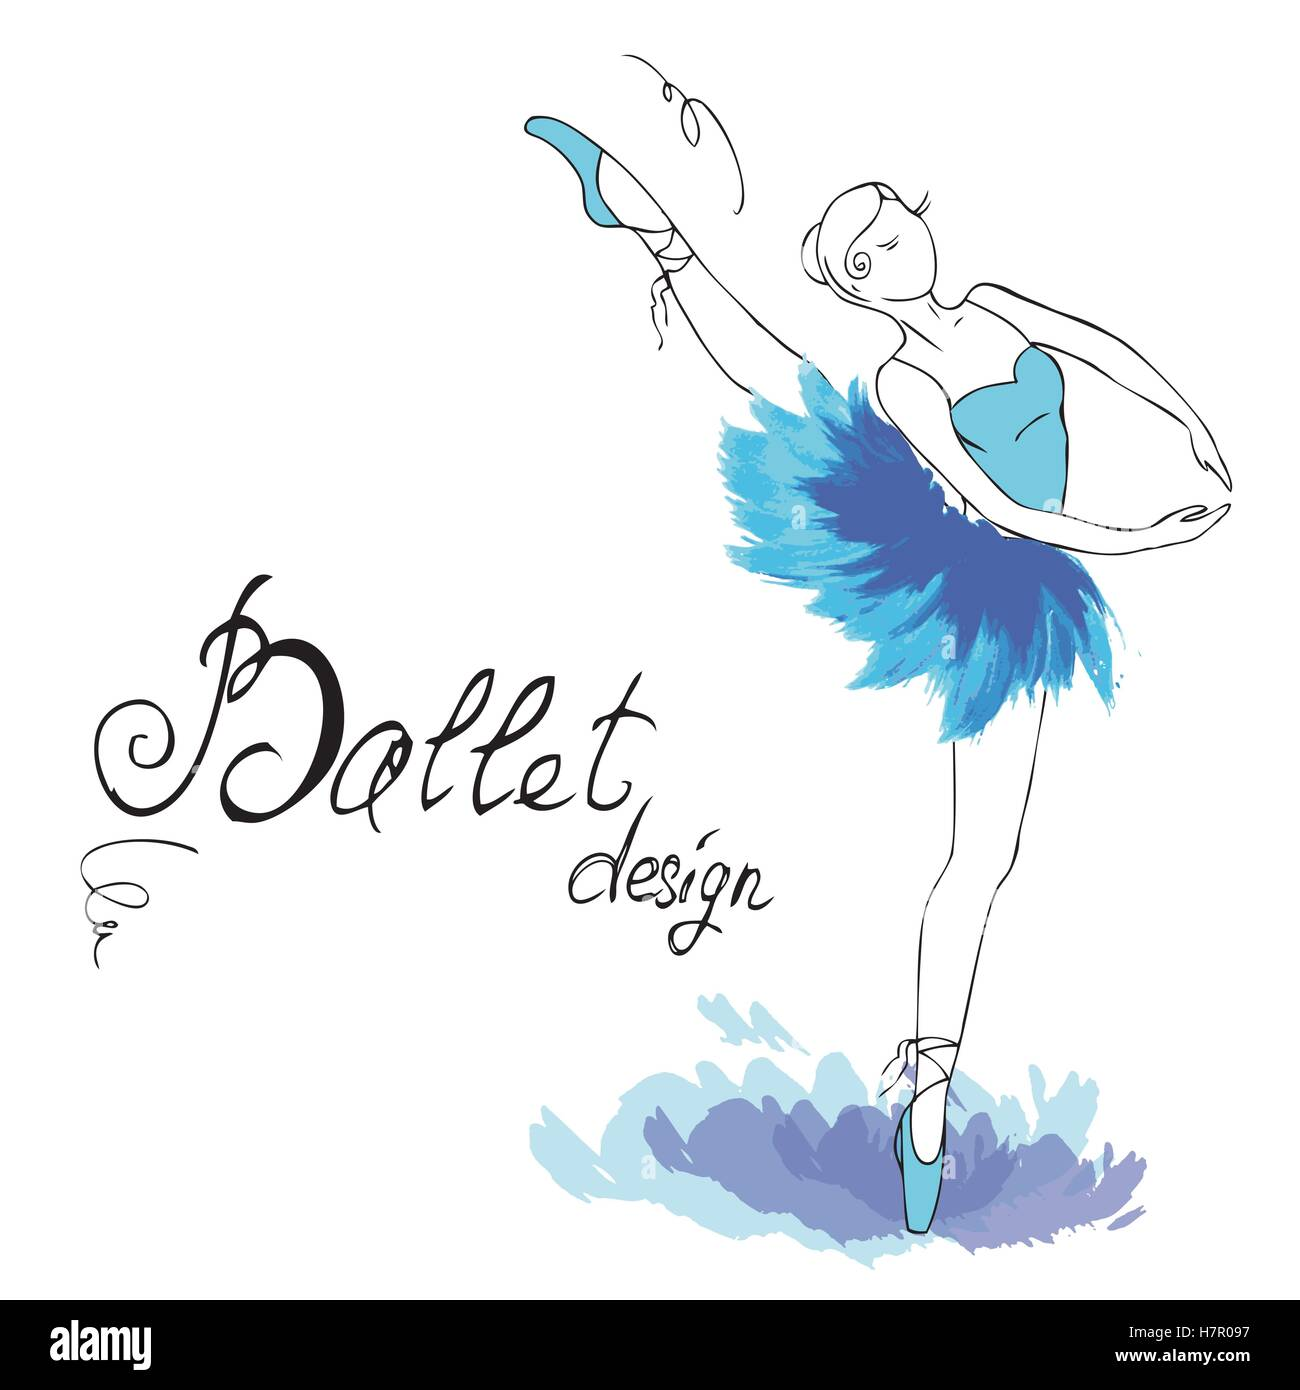 Ballet Dancer Drawing In Watercolor Style Vector Illustration Stock Vector Image Art Alamy